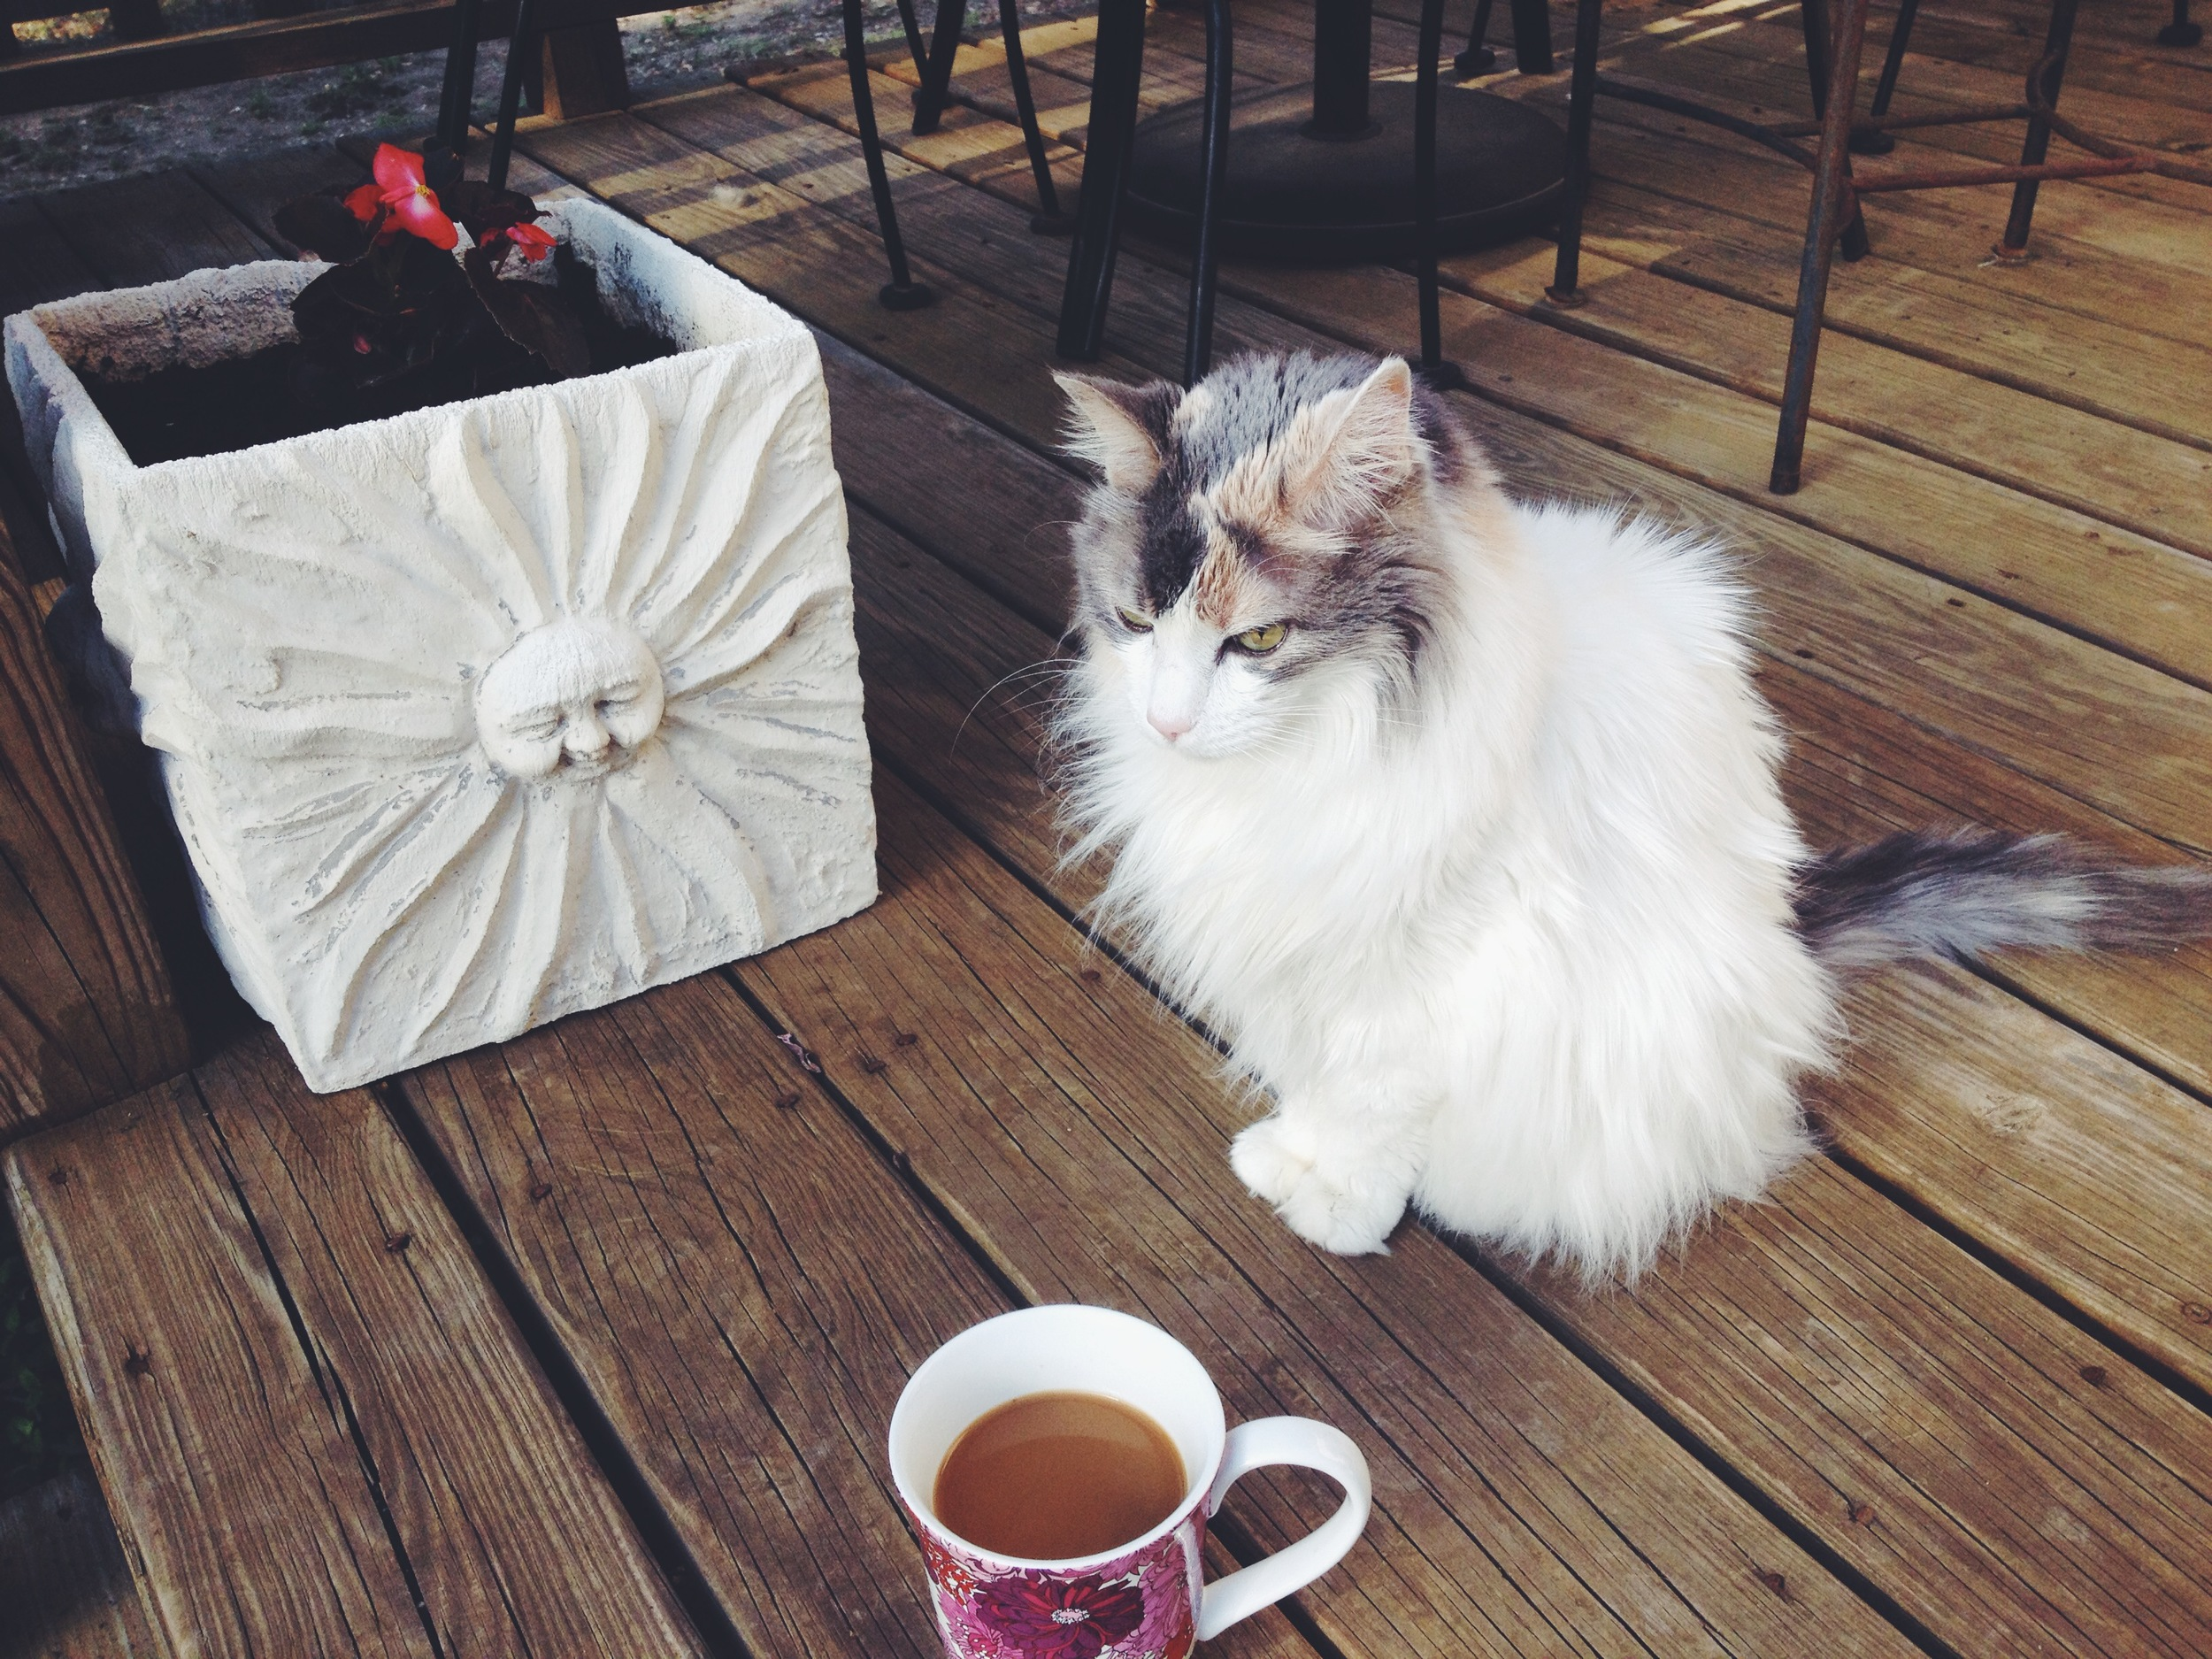 Coffee & Kitty in the morning